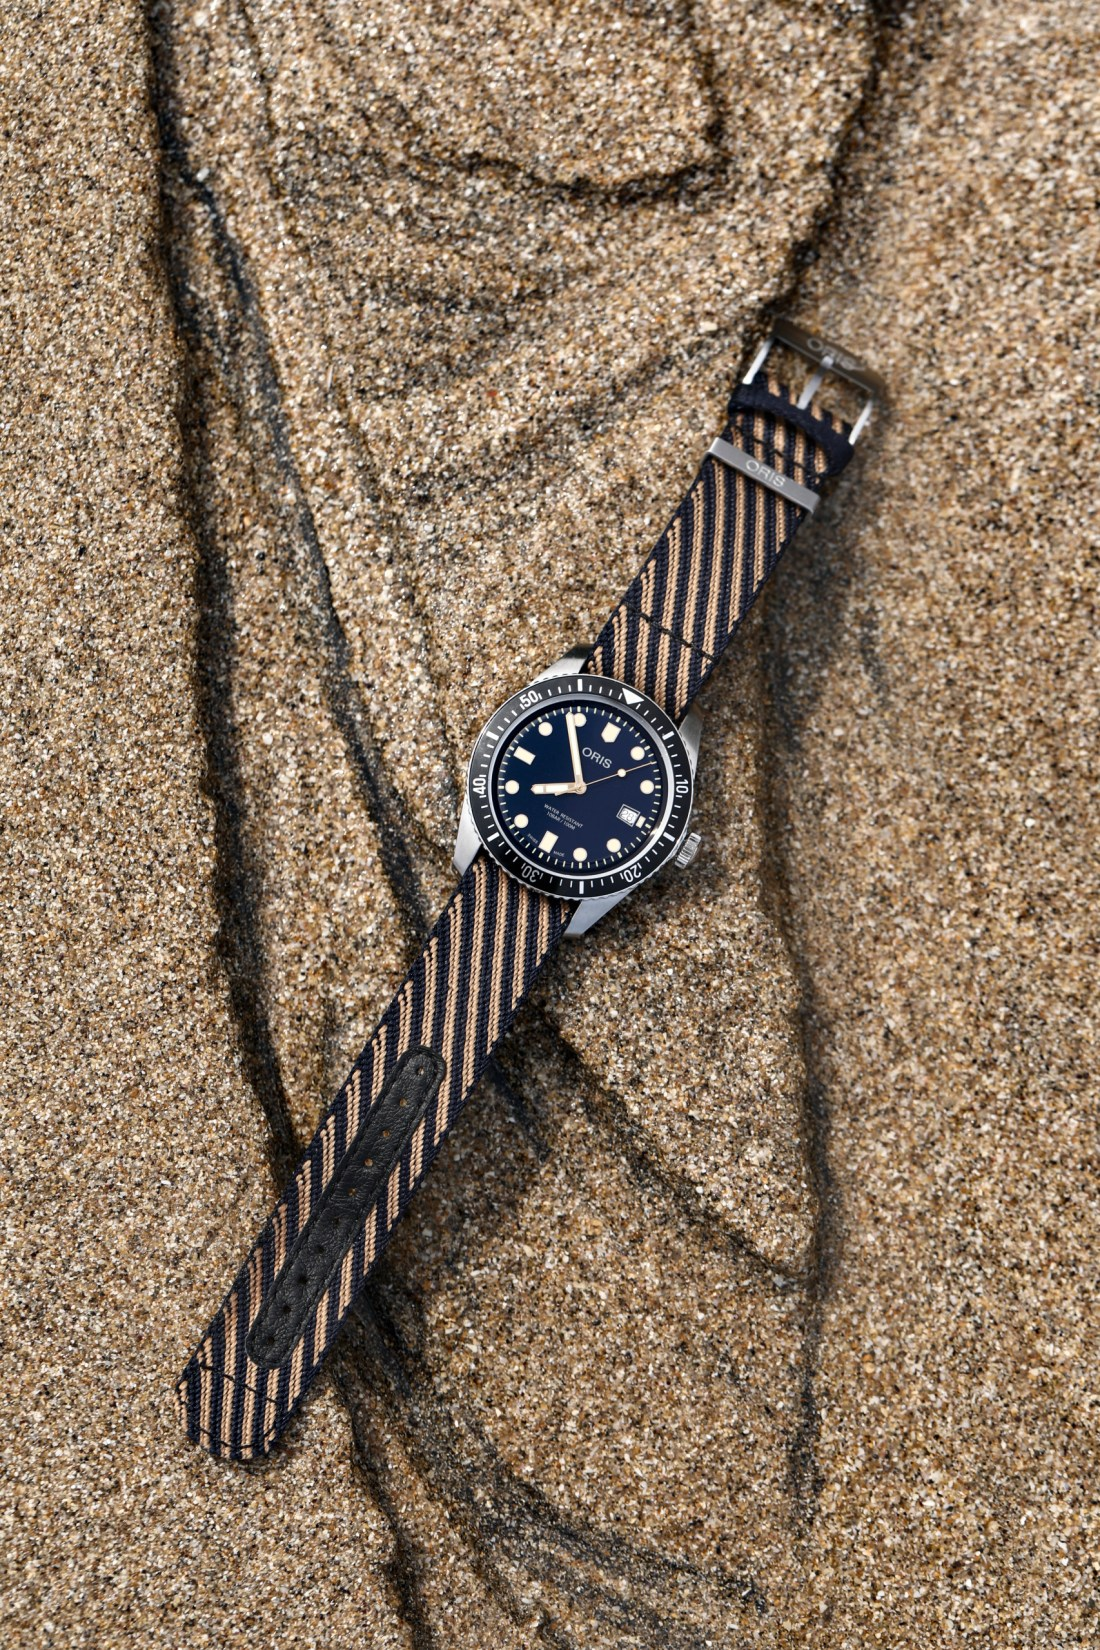 Cleanup Day Watch Reference: 01 733 7720 4035-07 5 21 13 Oris Divers Sixty-Five